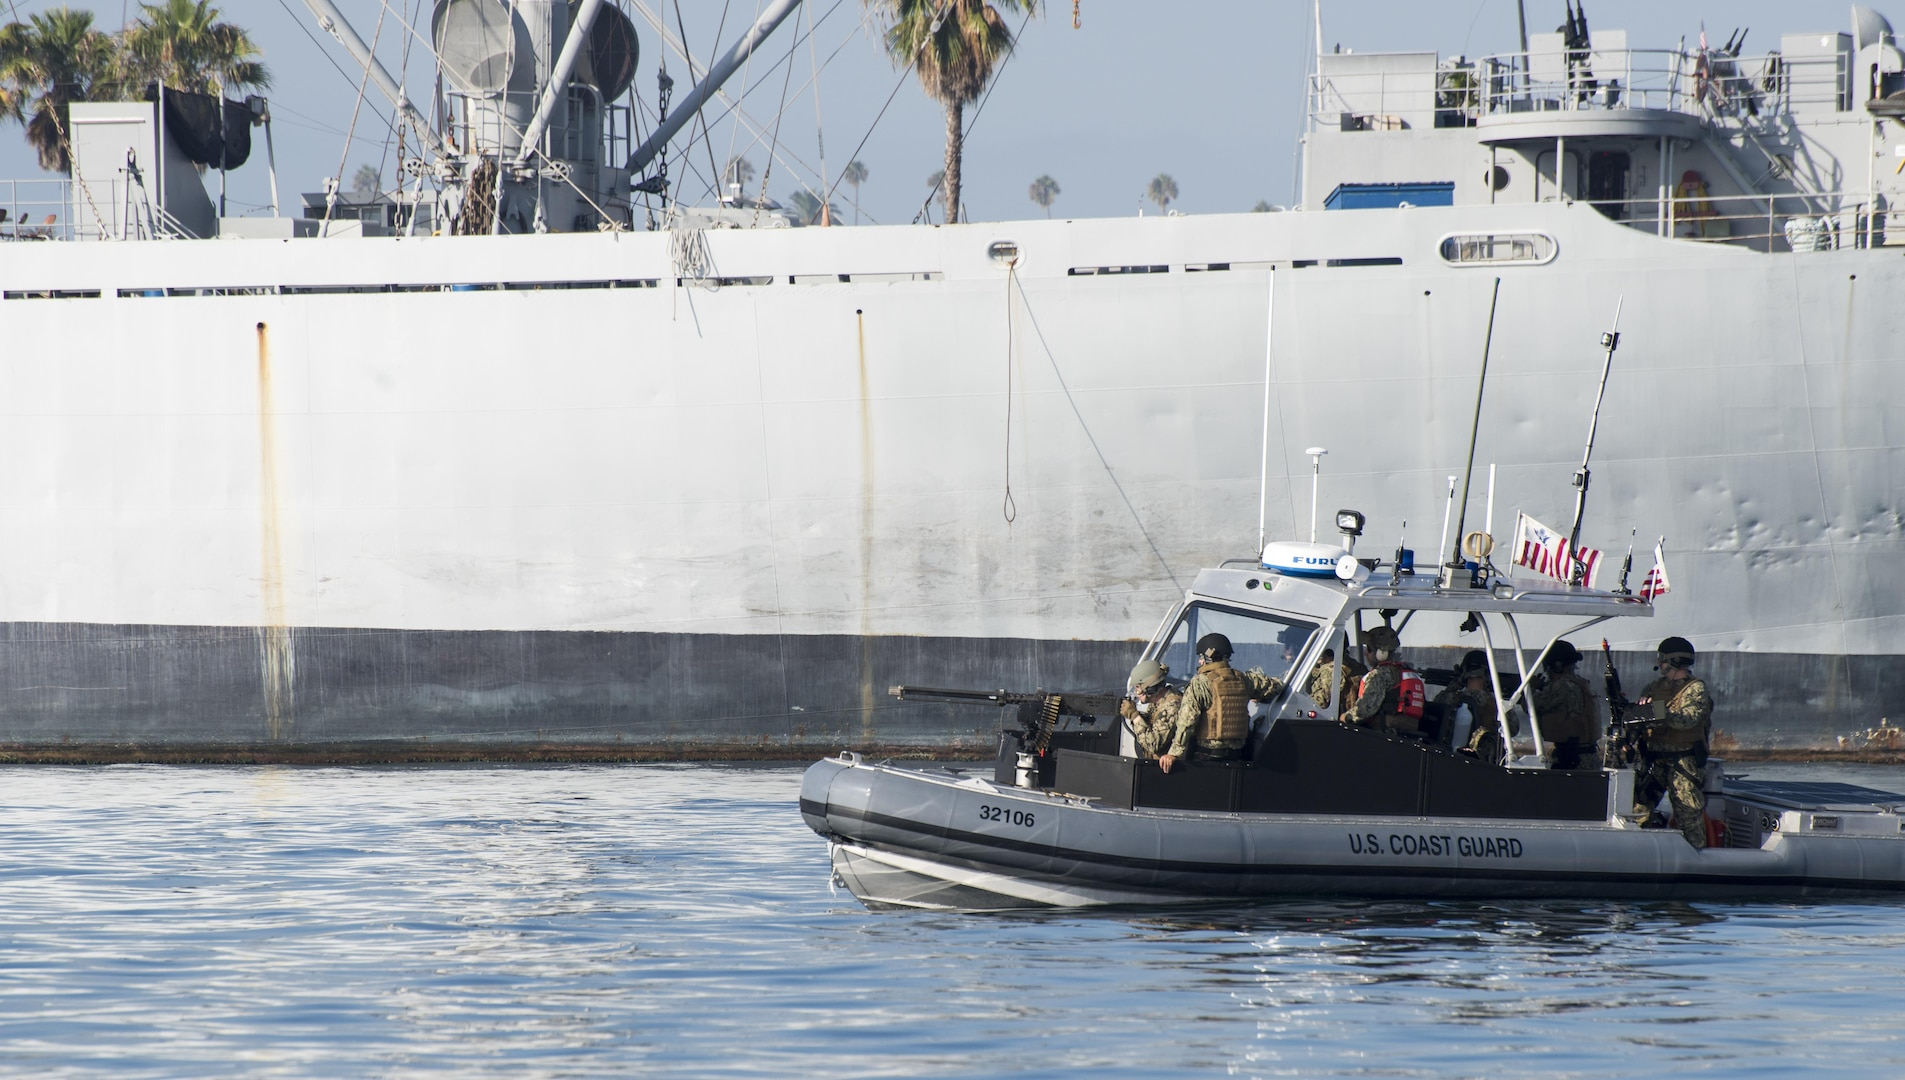 Members of Coast Guard Port Security Unit 311 based in San Pedro, conducted a military training exercise in the Port of Los Angeles. (U.S. Coast Guard Photo by Petty Officer 3rd Class Andrea Anderson)